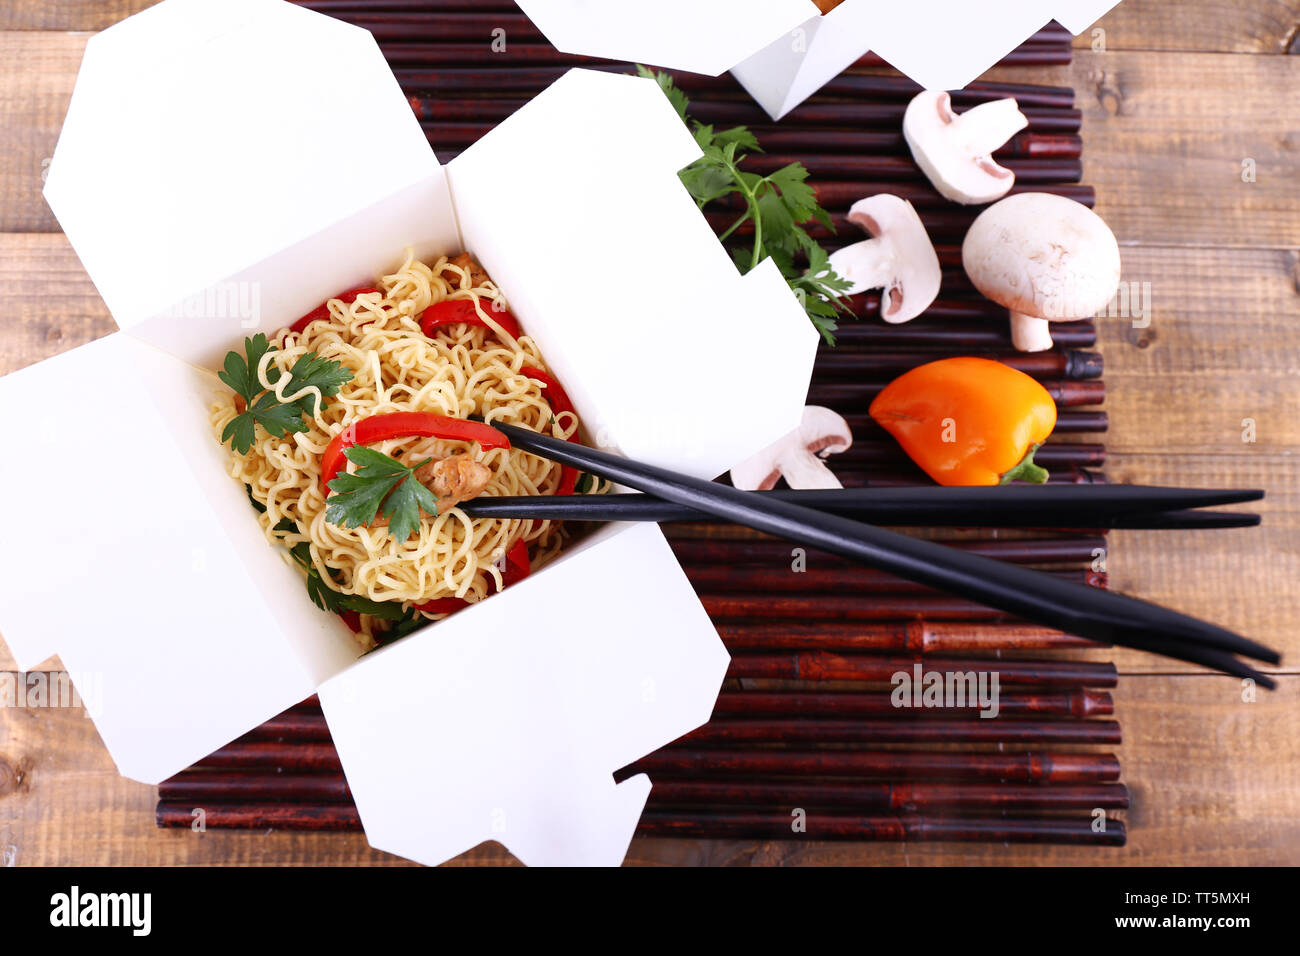 Chinese noodles in takeaway boxes on bamboo mat on wooden background - Stock Image